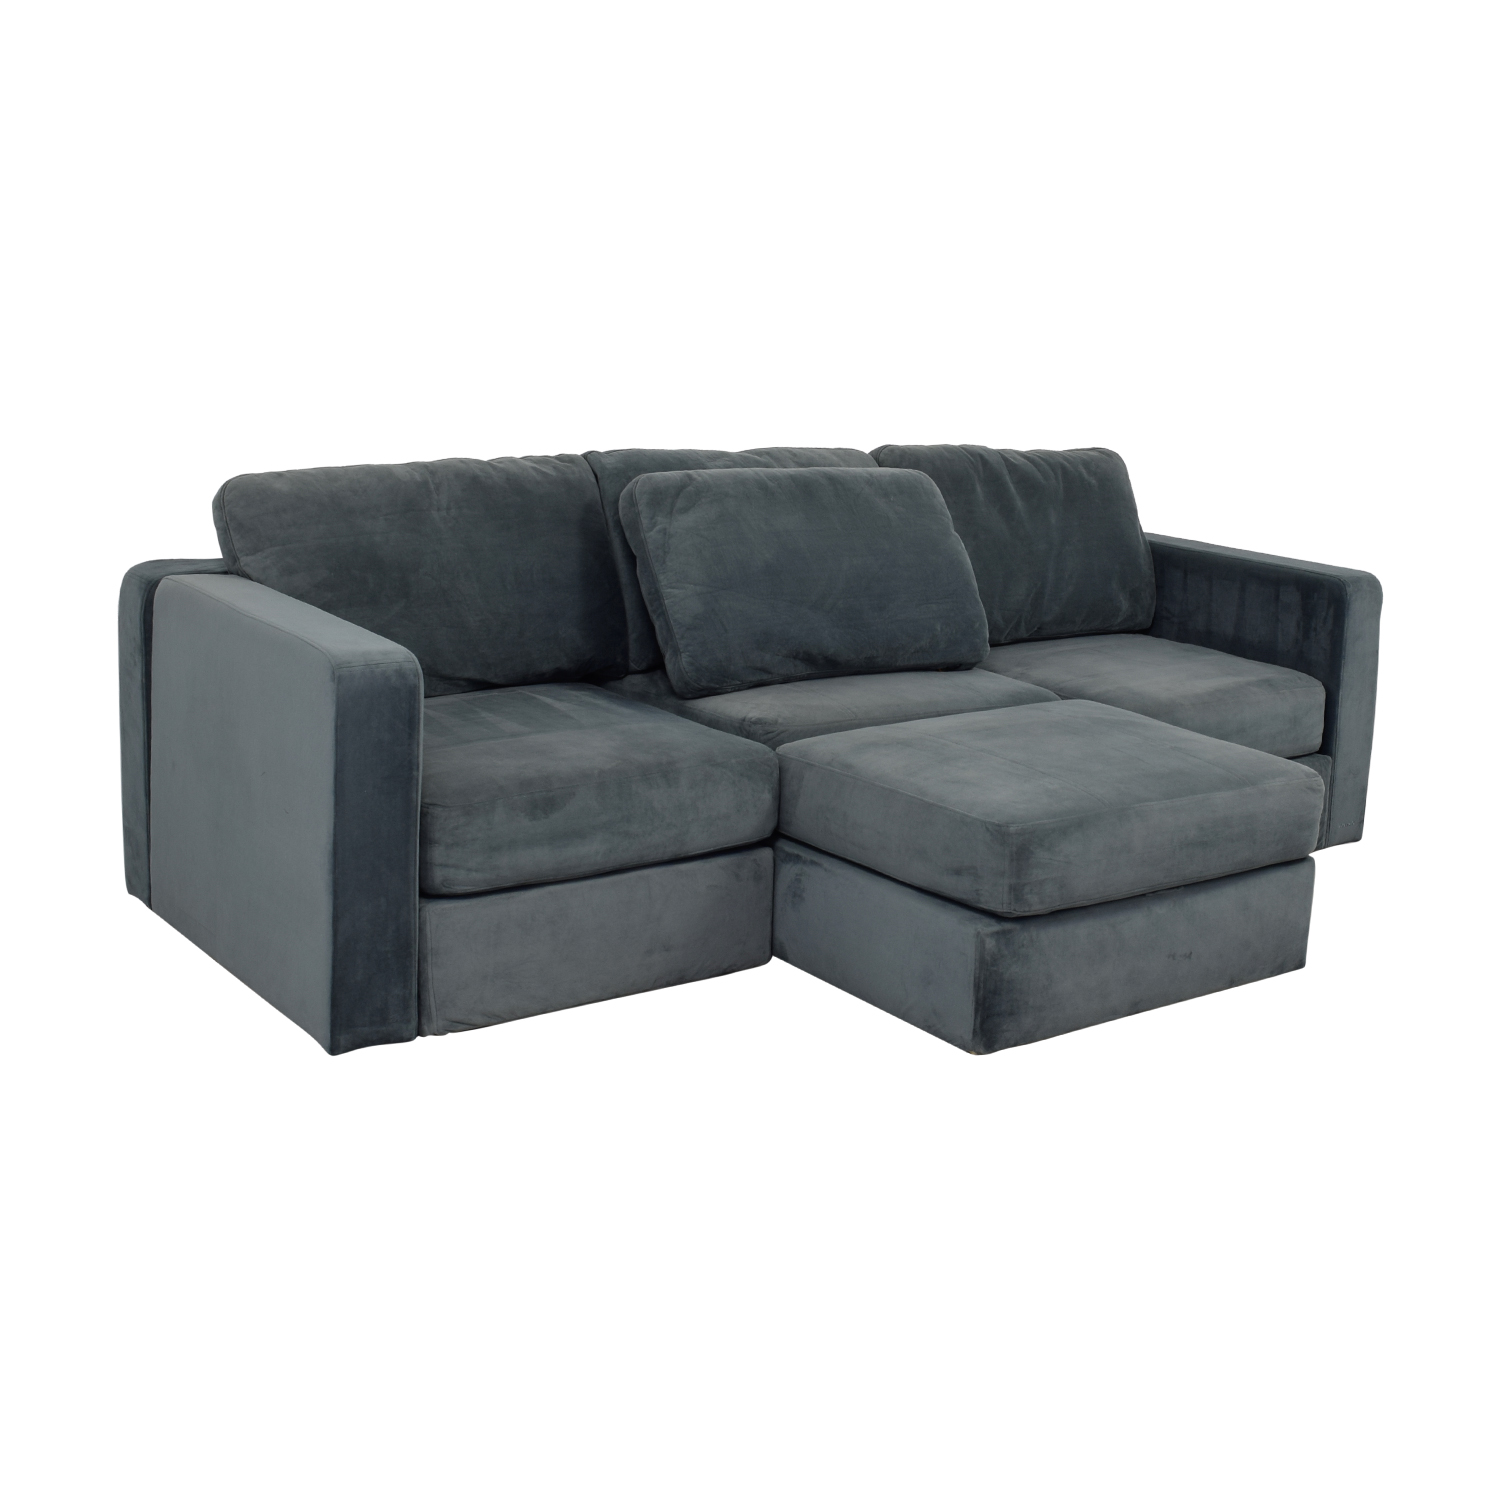 Lovesac Lovesac Grey Center Chaise Sectional / Sofas